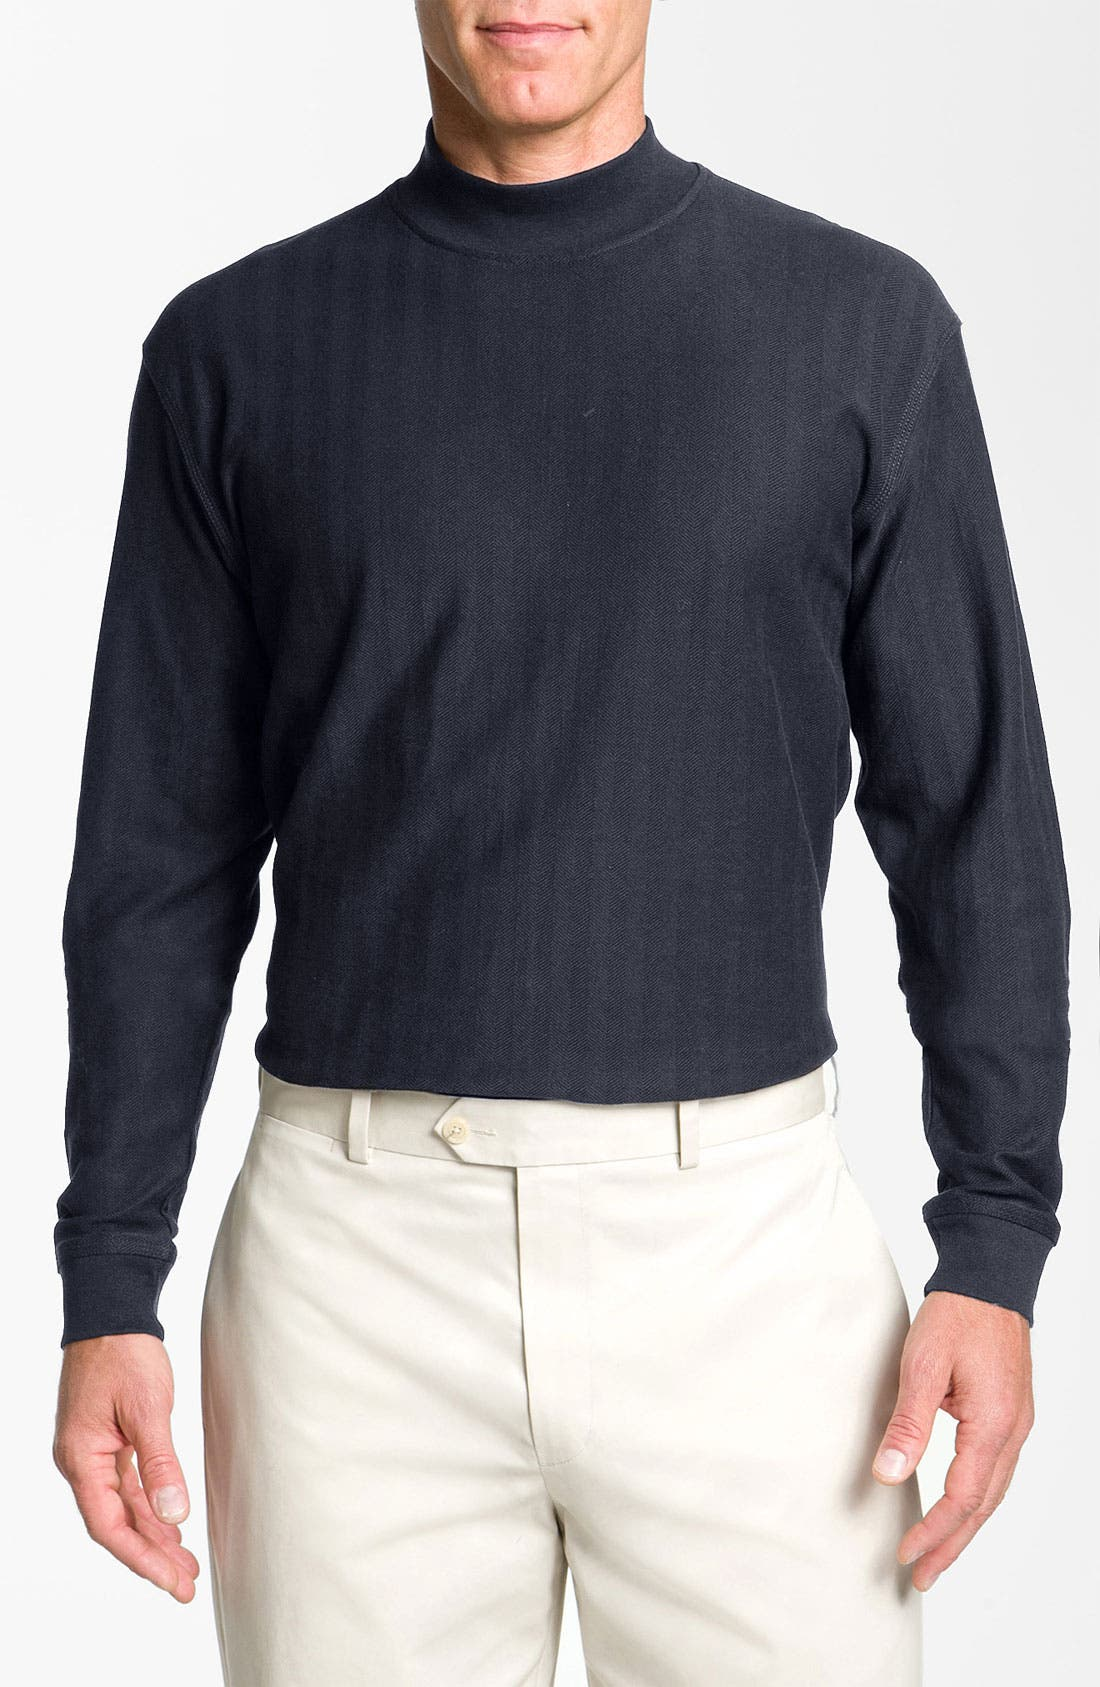 Main Image - Cutter & Buck 'Atwell' Mock Neck Sweater (Big & Tall) (Online Exclusive)